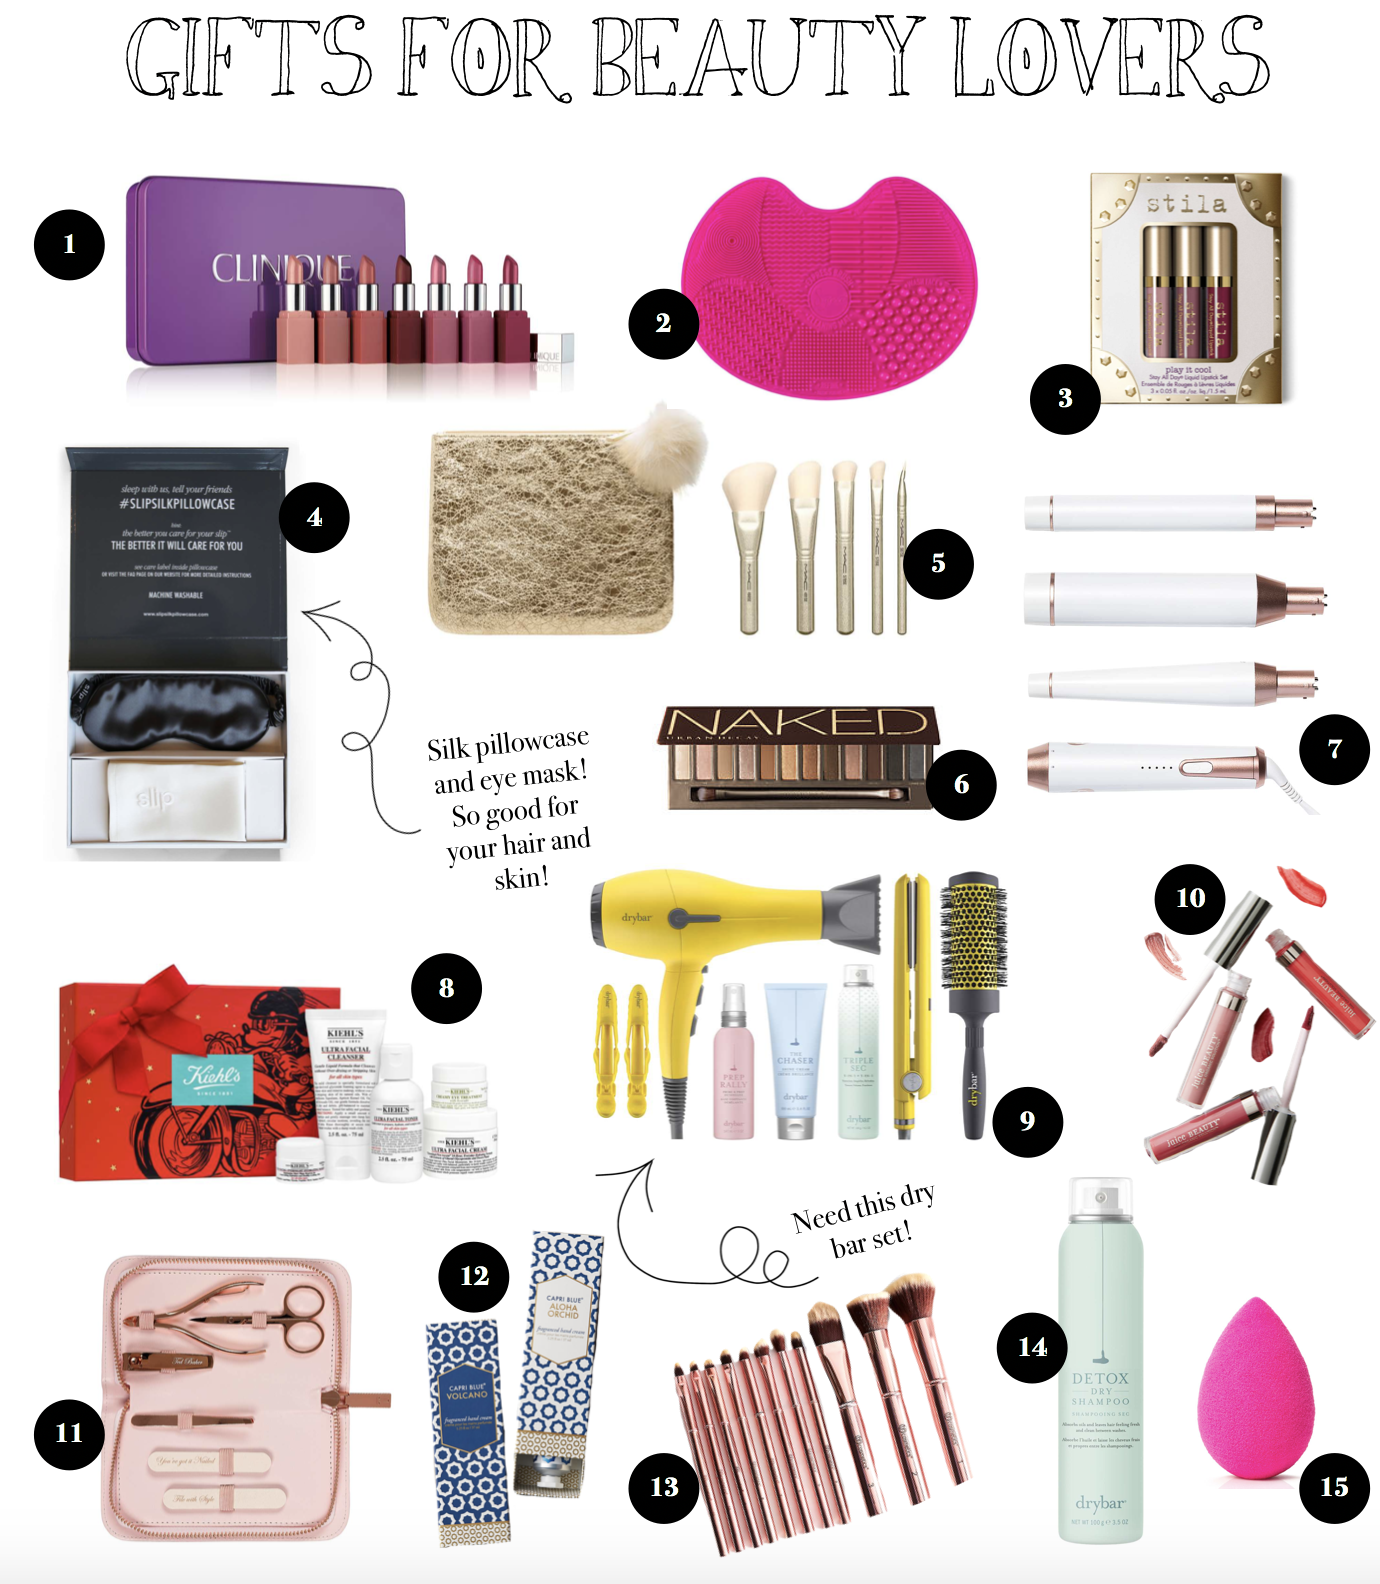 12 Gift Guides of 2017 Gift ideas for beauty lovers - make up, hair, beauty and more! on fashion blog daily dose of charm by lauren lindmark